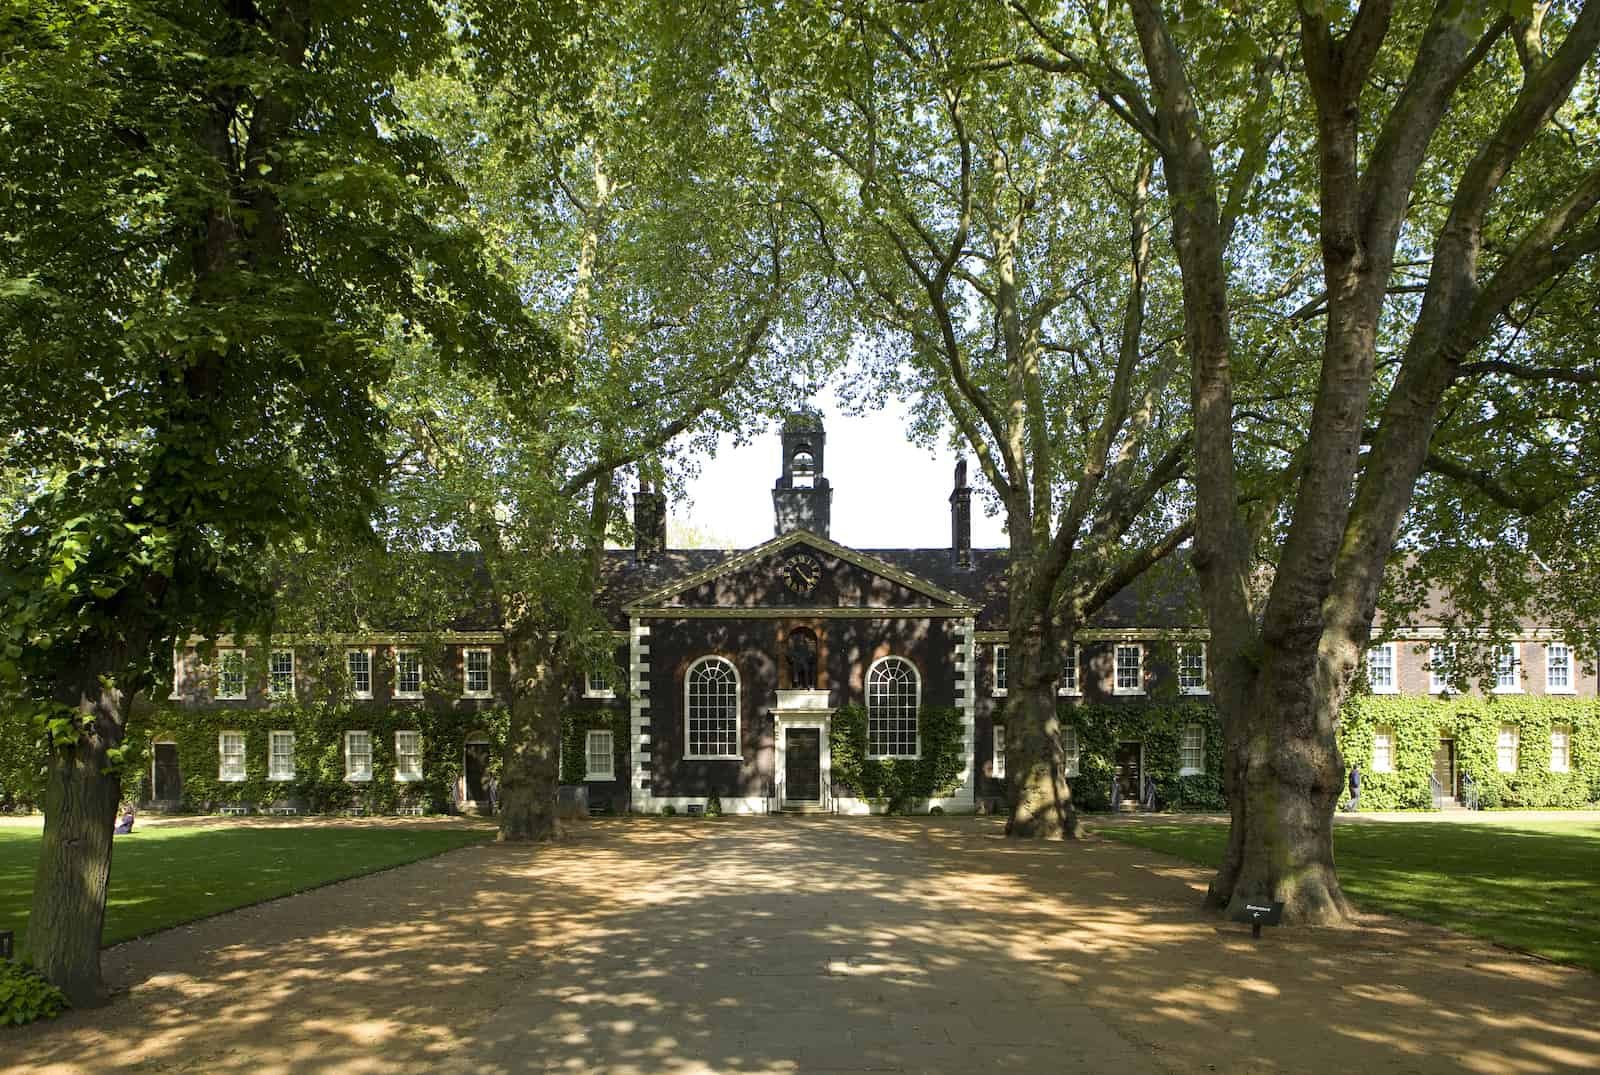 A wide-angle shot of the Museum of the Home Geffrye almshouses in the sunshine. The view is down the central path towards the exterior of the Chapel.